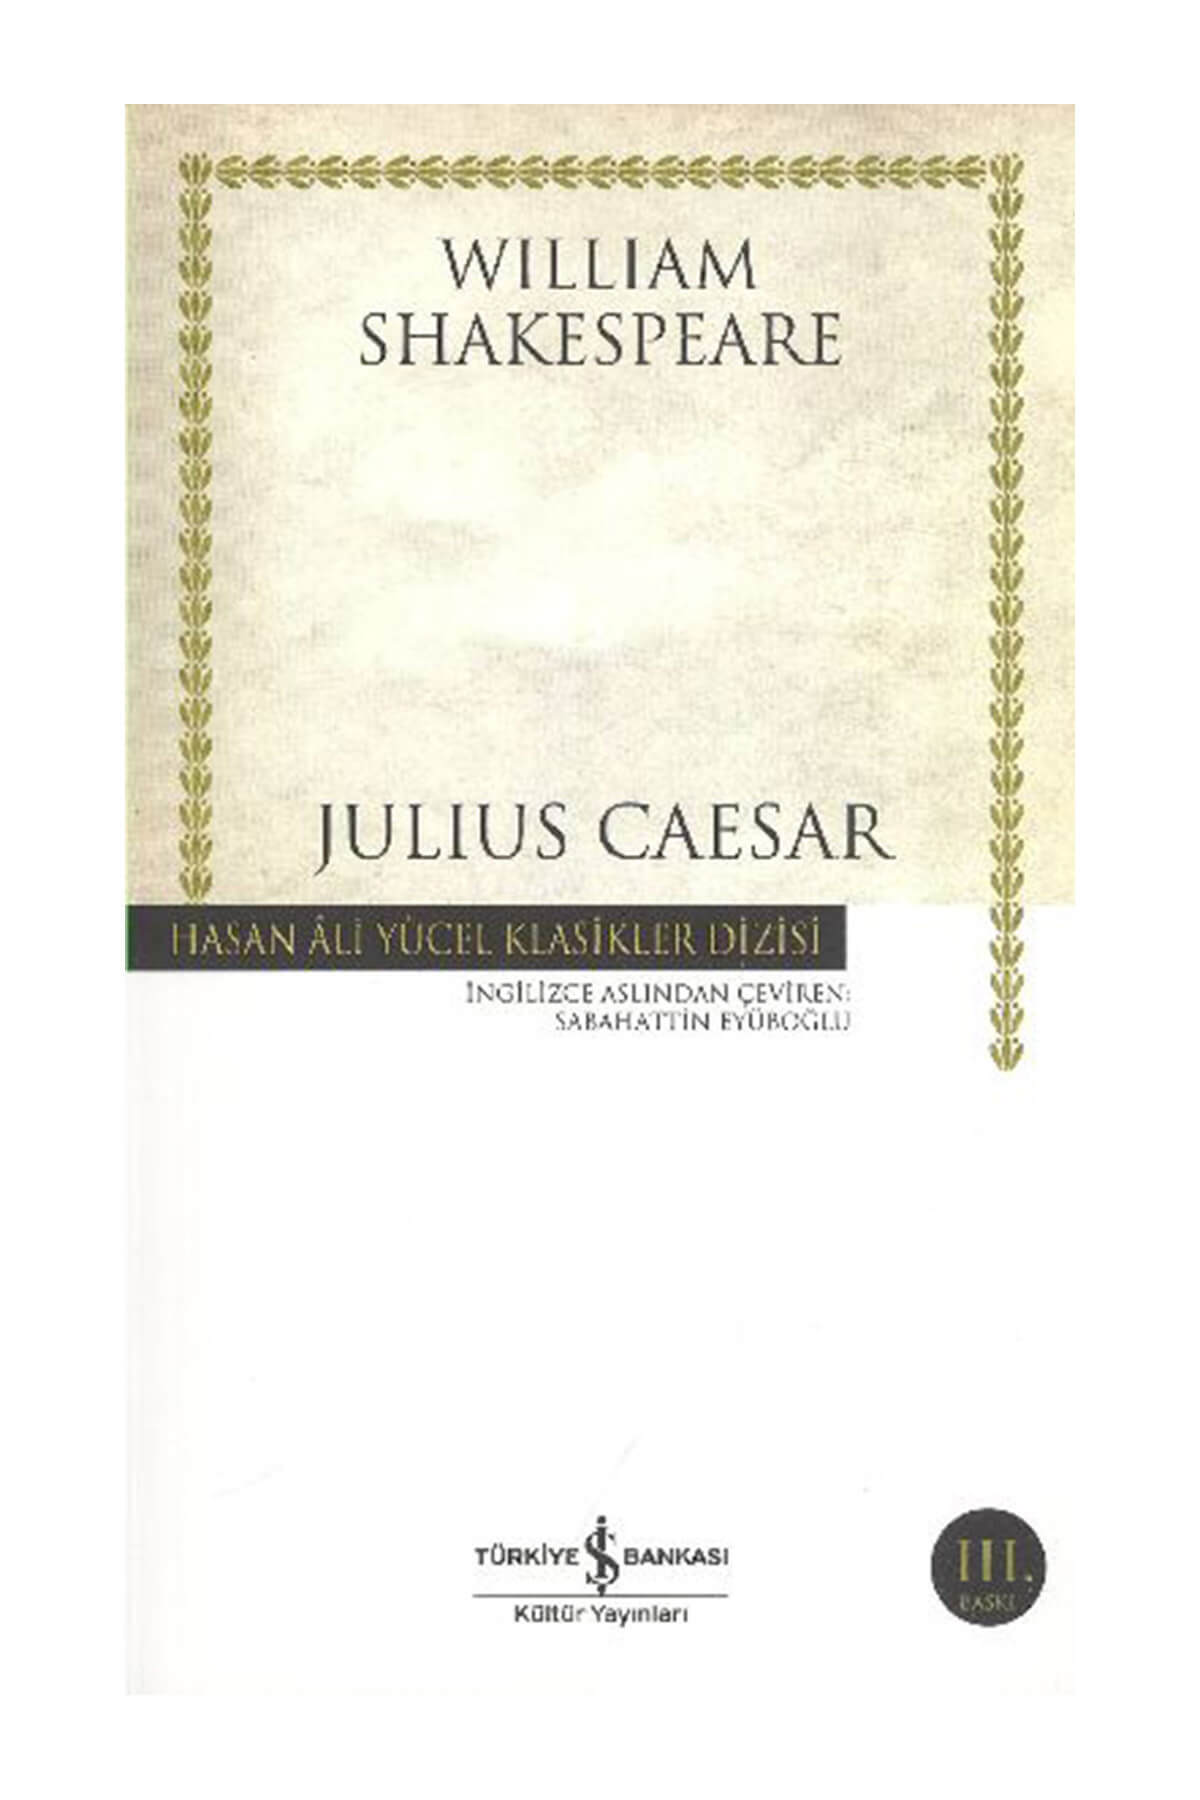 an analysis of superstition in julius caesar by william shakespeare William shakespeare's macbeth and julius caesar in seven pages a comparative analysis of these plays by william shakespeare focus upon the power theme as portrayed in each ten sources are cited in the bibliography.